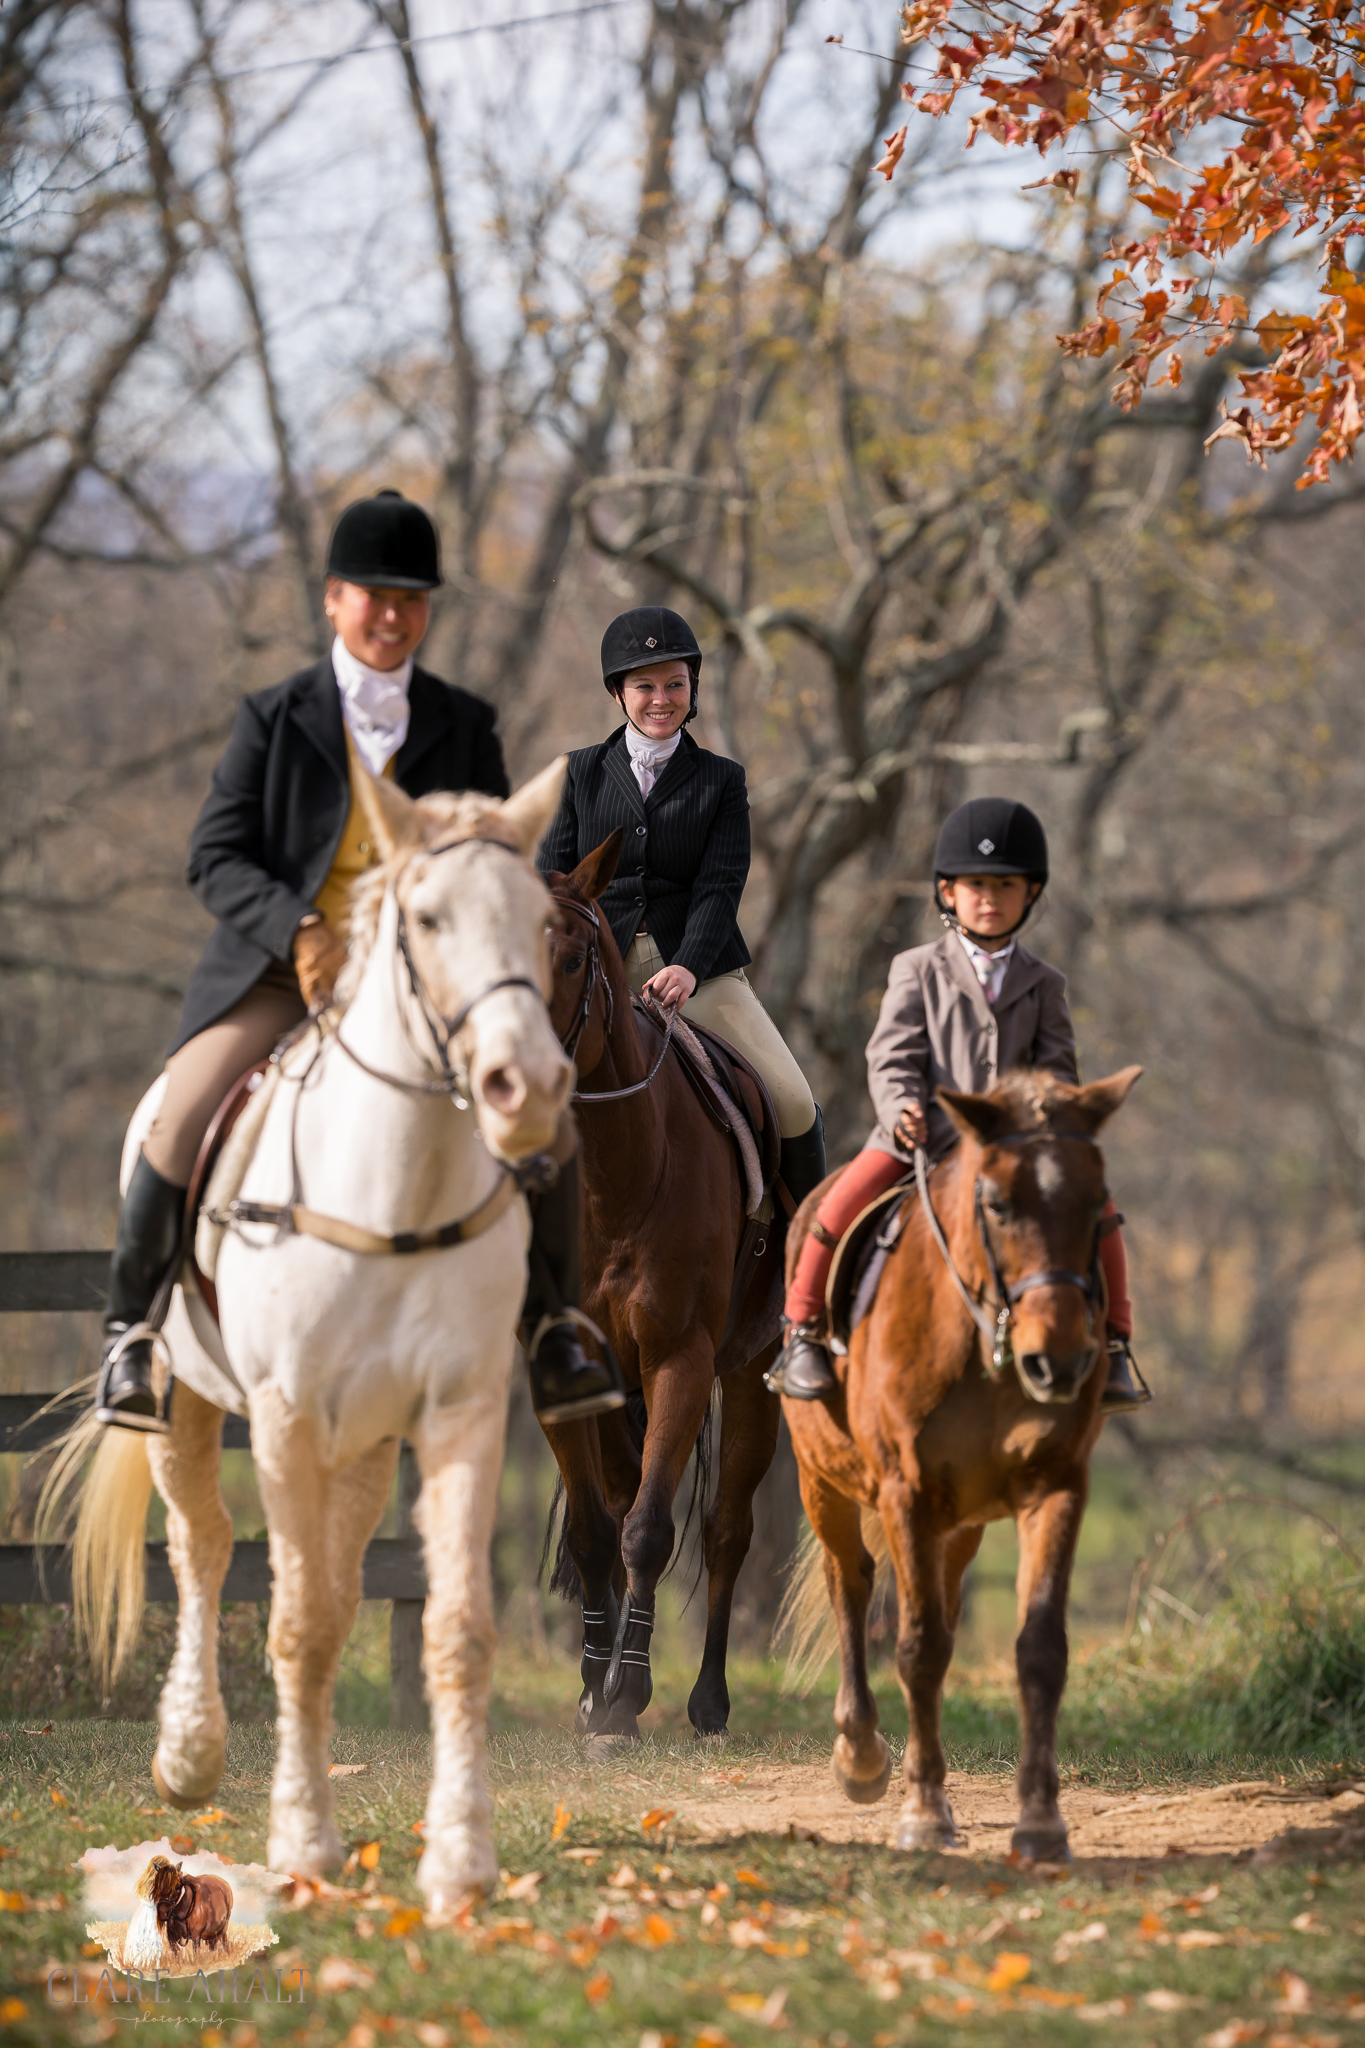 Best_Equestrian_Photographer_Maryland_equine_photographer_northern_virginia_equestrian_Photographer-74.jpg